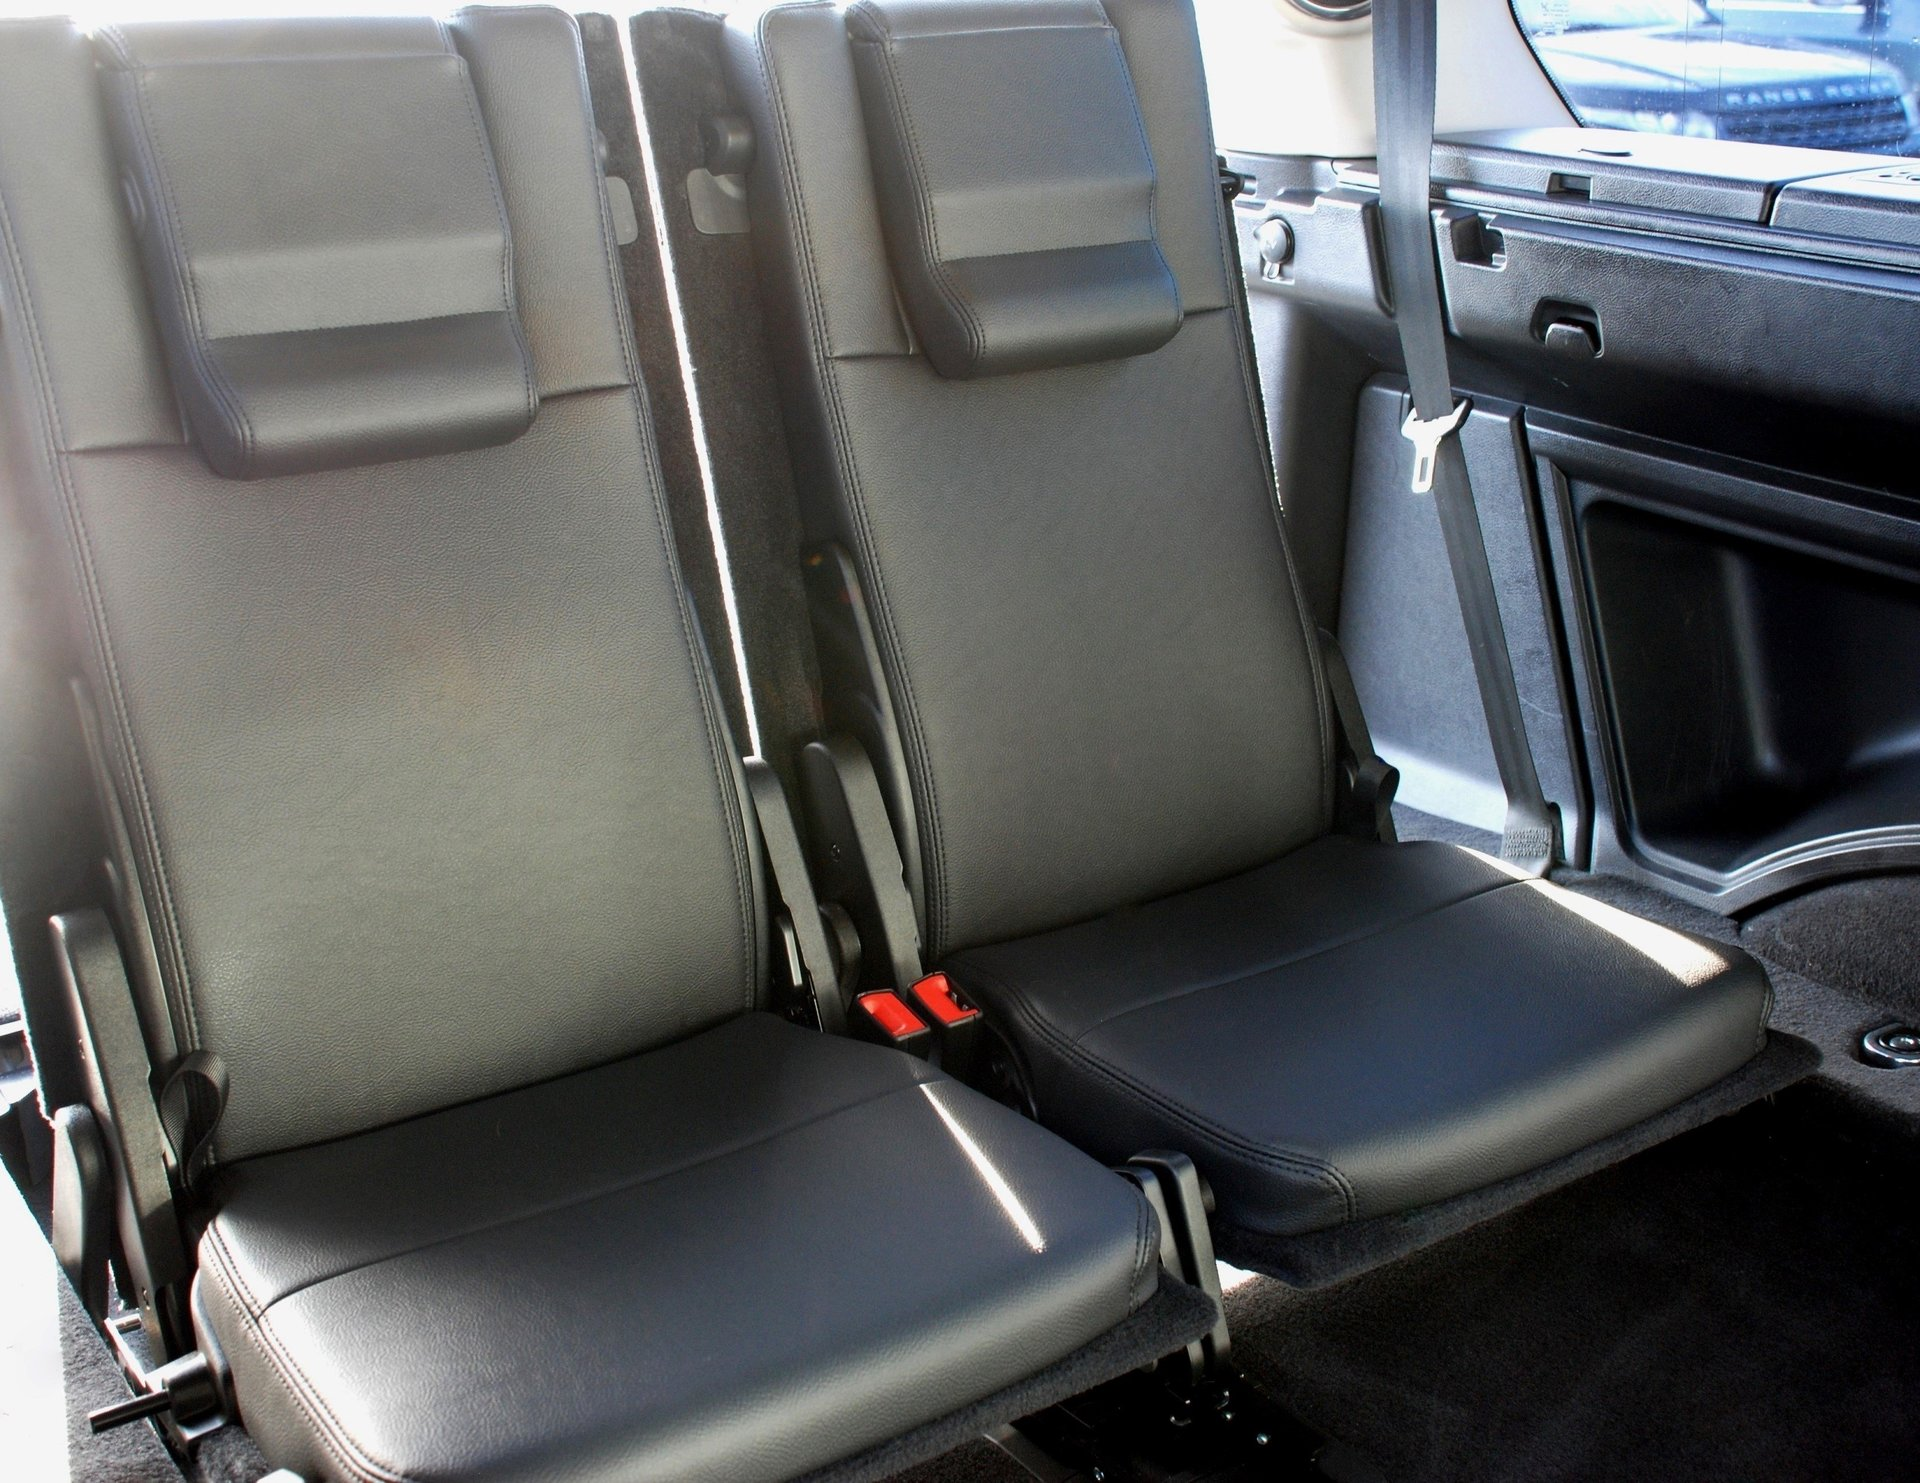 conversion for used land rover discovery commercial 3rd row leather seats makes 7 seater. Black Bedroom Furniture Sets. Home Design Ideas